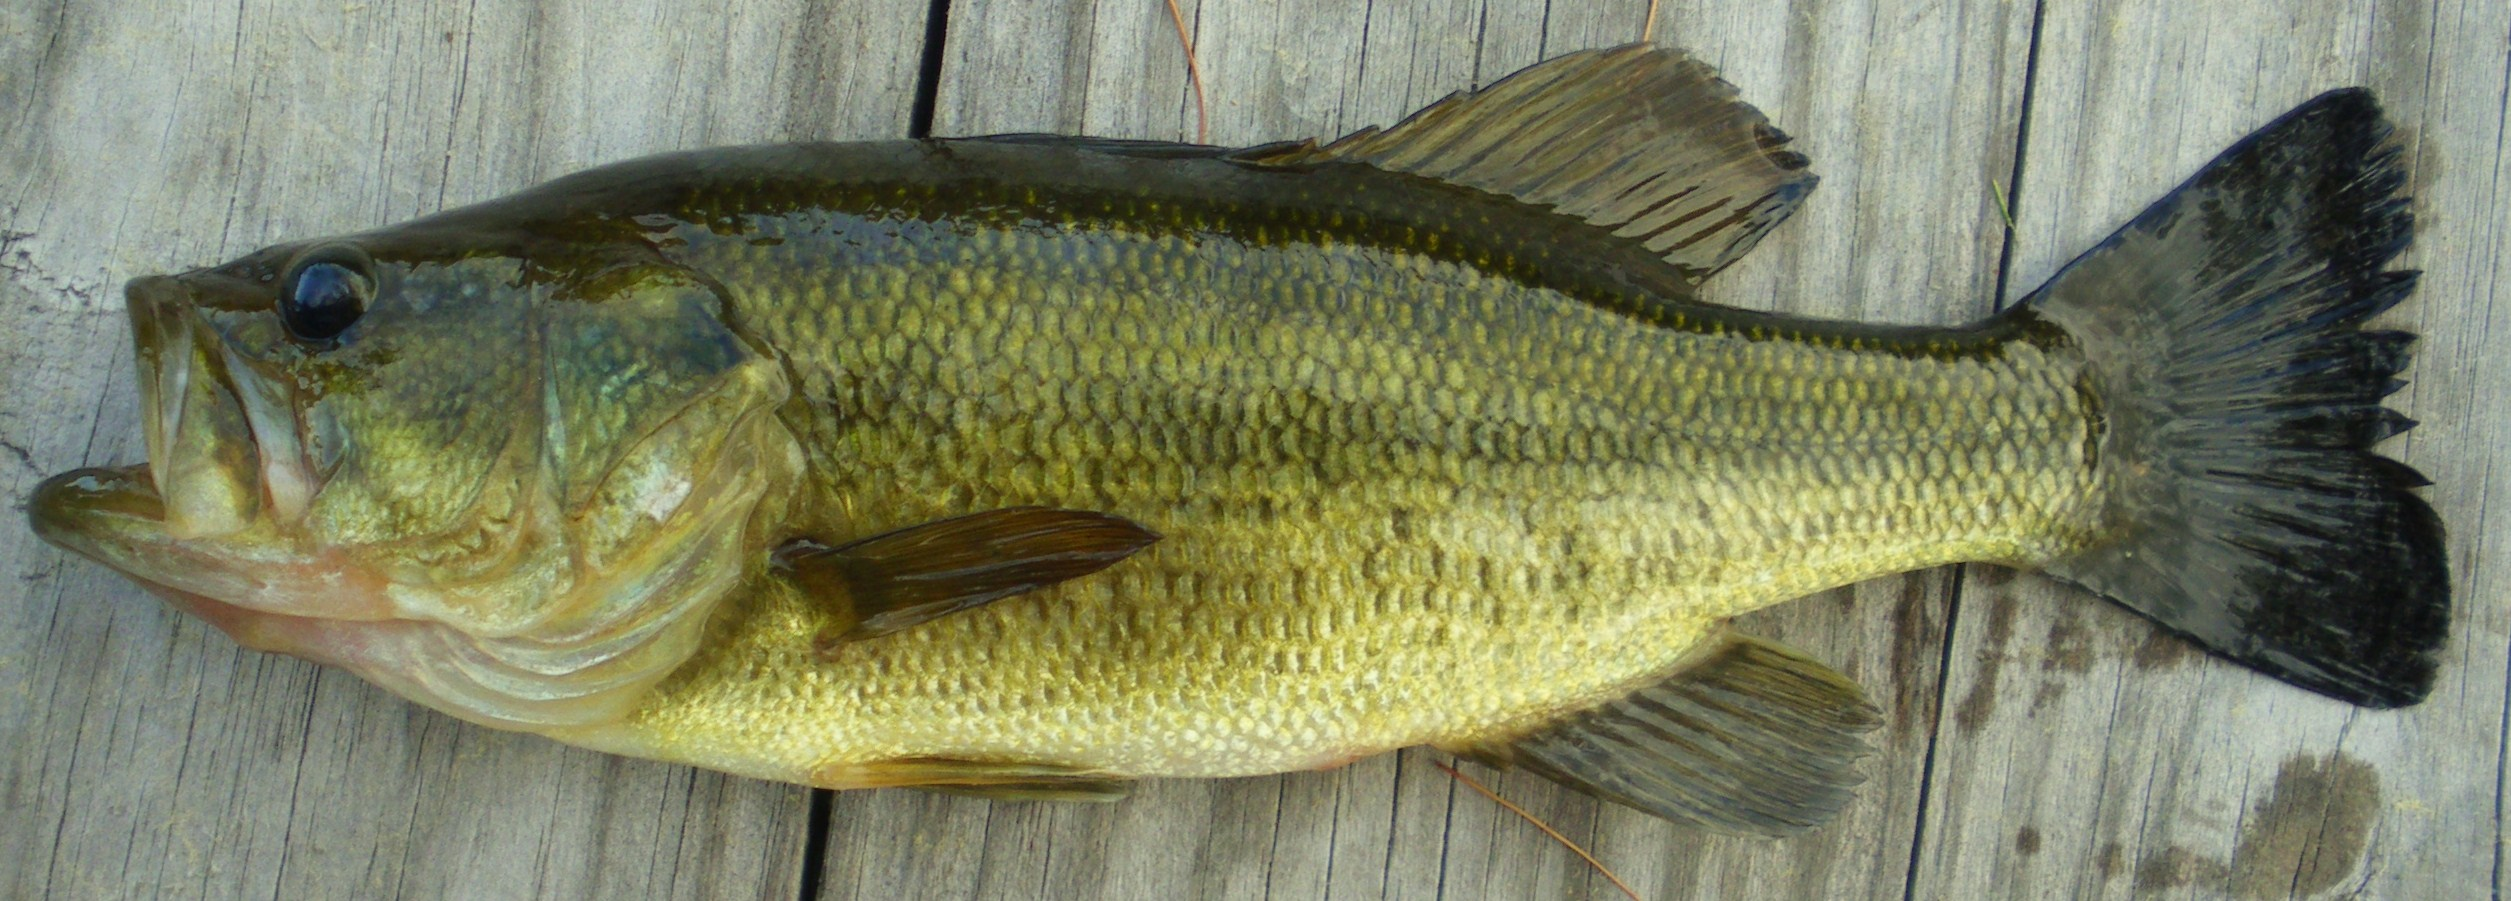 from Cedric large mouth bass photos